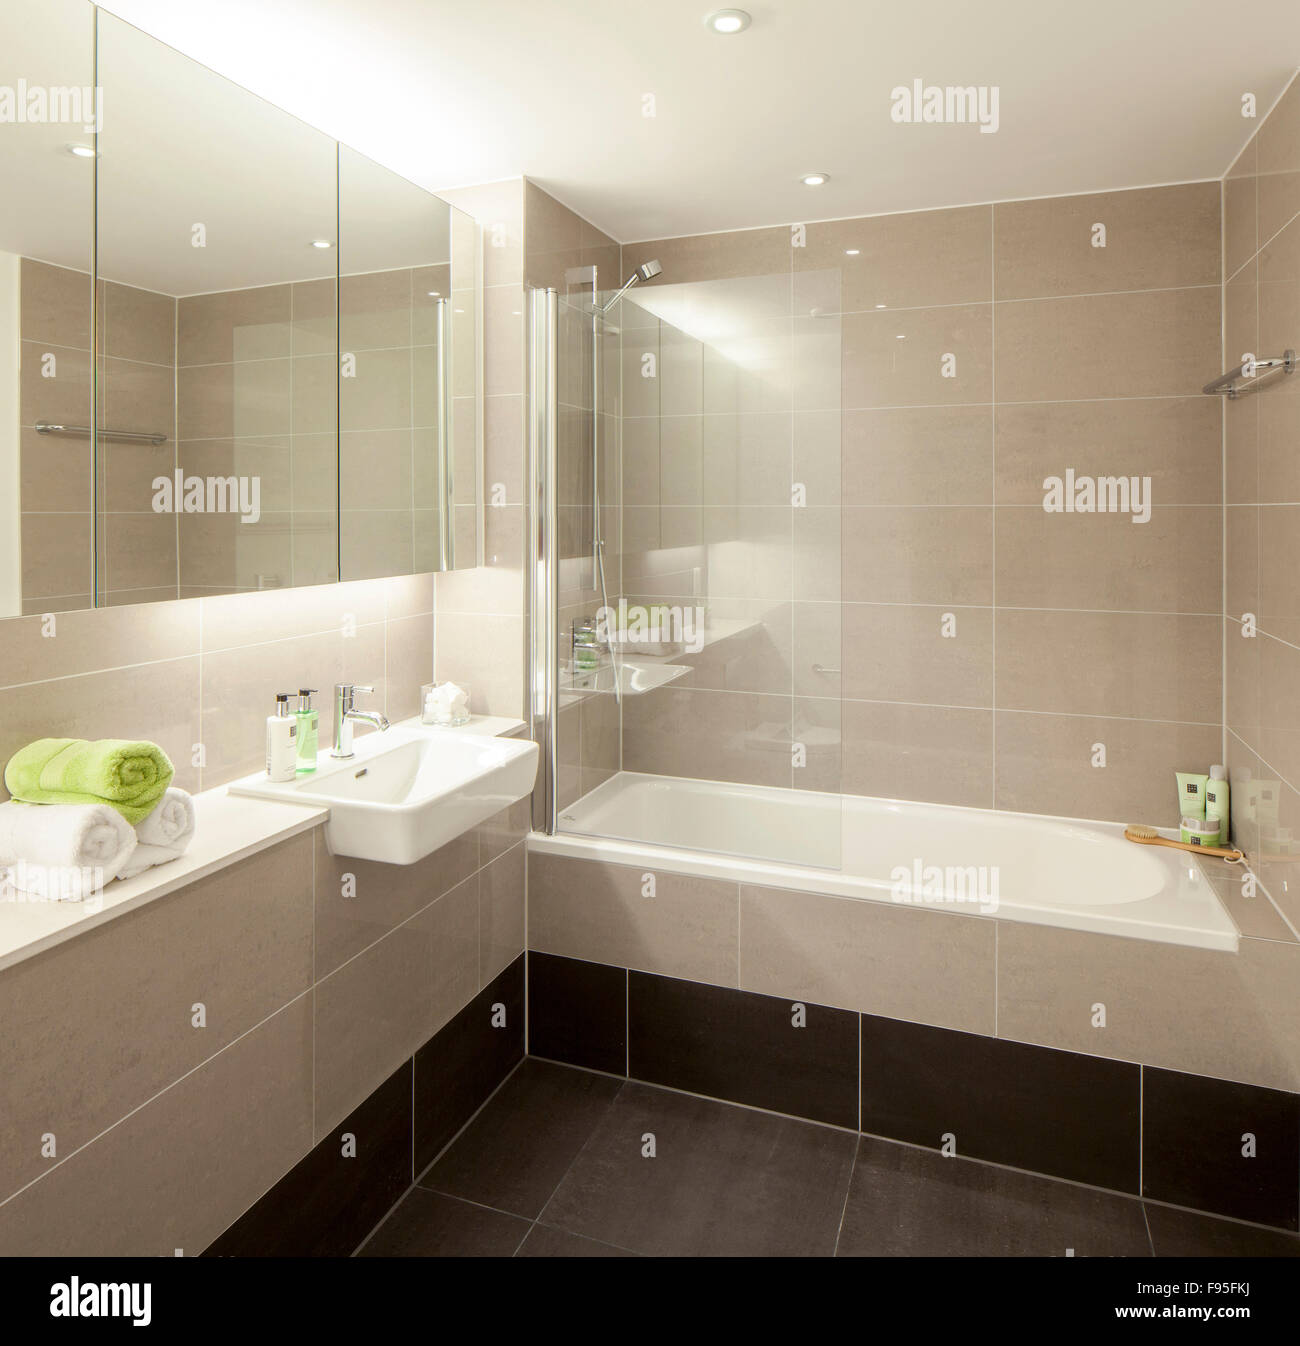 One Church Square, London, UK. Corner view of a modern bathroom in ...